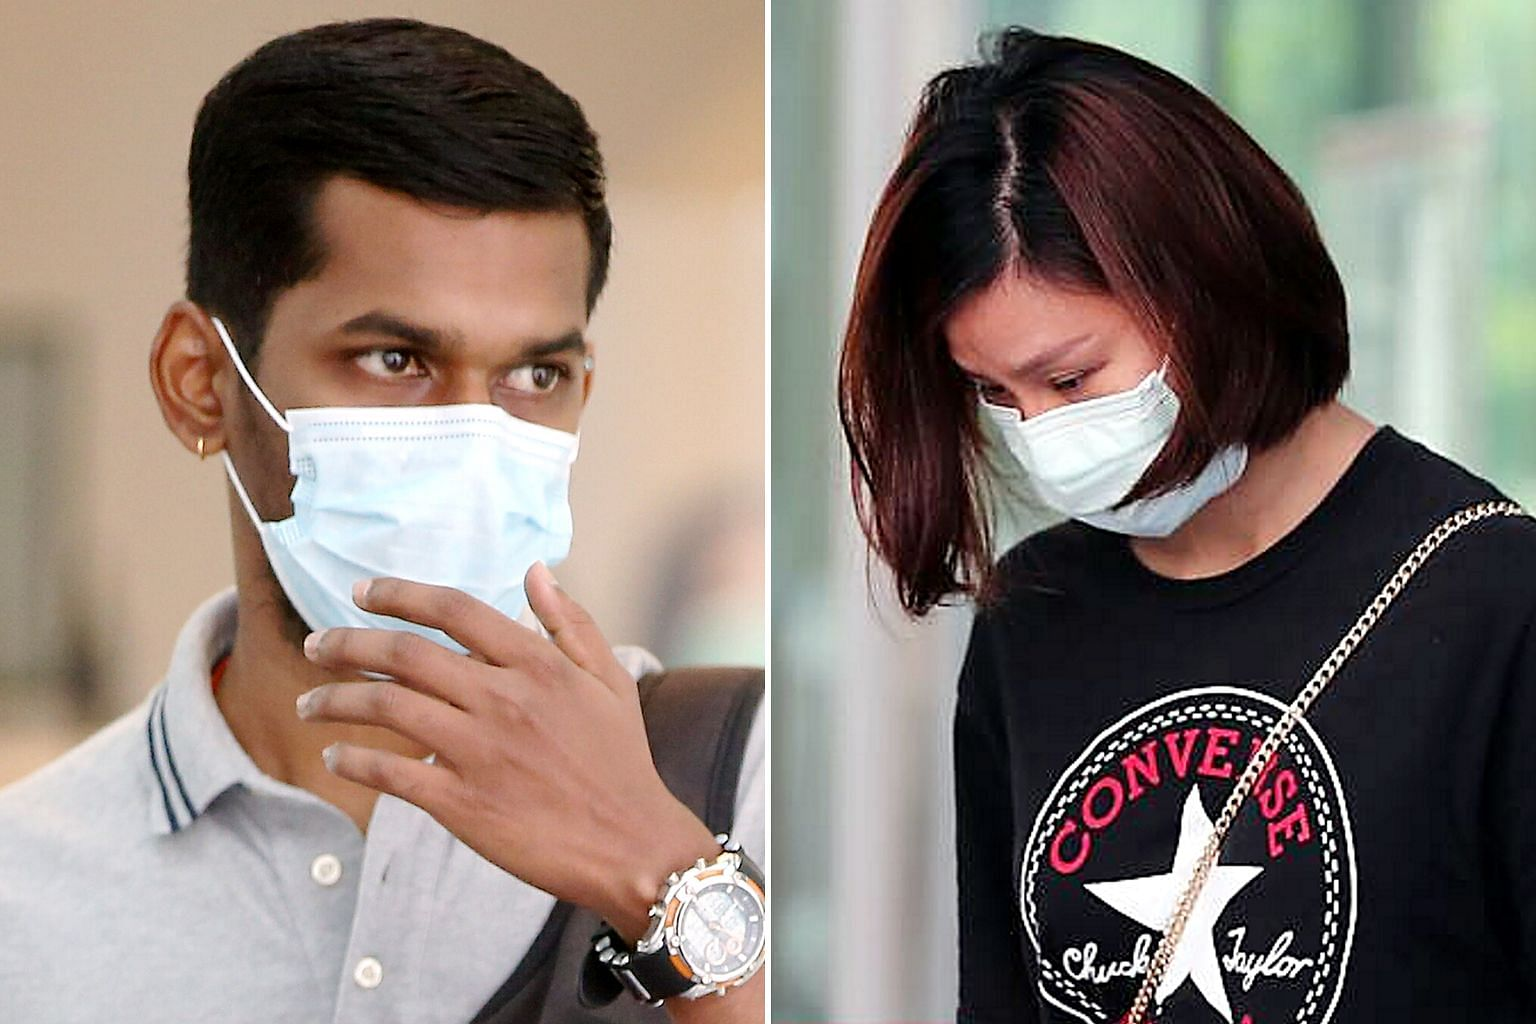 (From left) Sajandeep Singh, Navdeep Singh and Avinash Kaur allowed seven visitors to enter their place of residence for a social gathering during the circuit breaker. The 10 Indian nationals had student or work passes cancelled and have been deporte